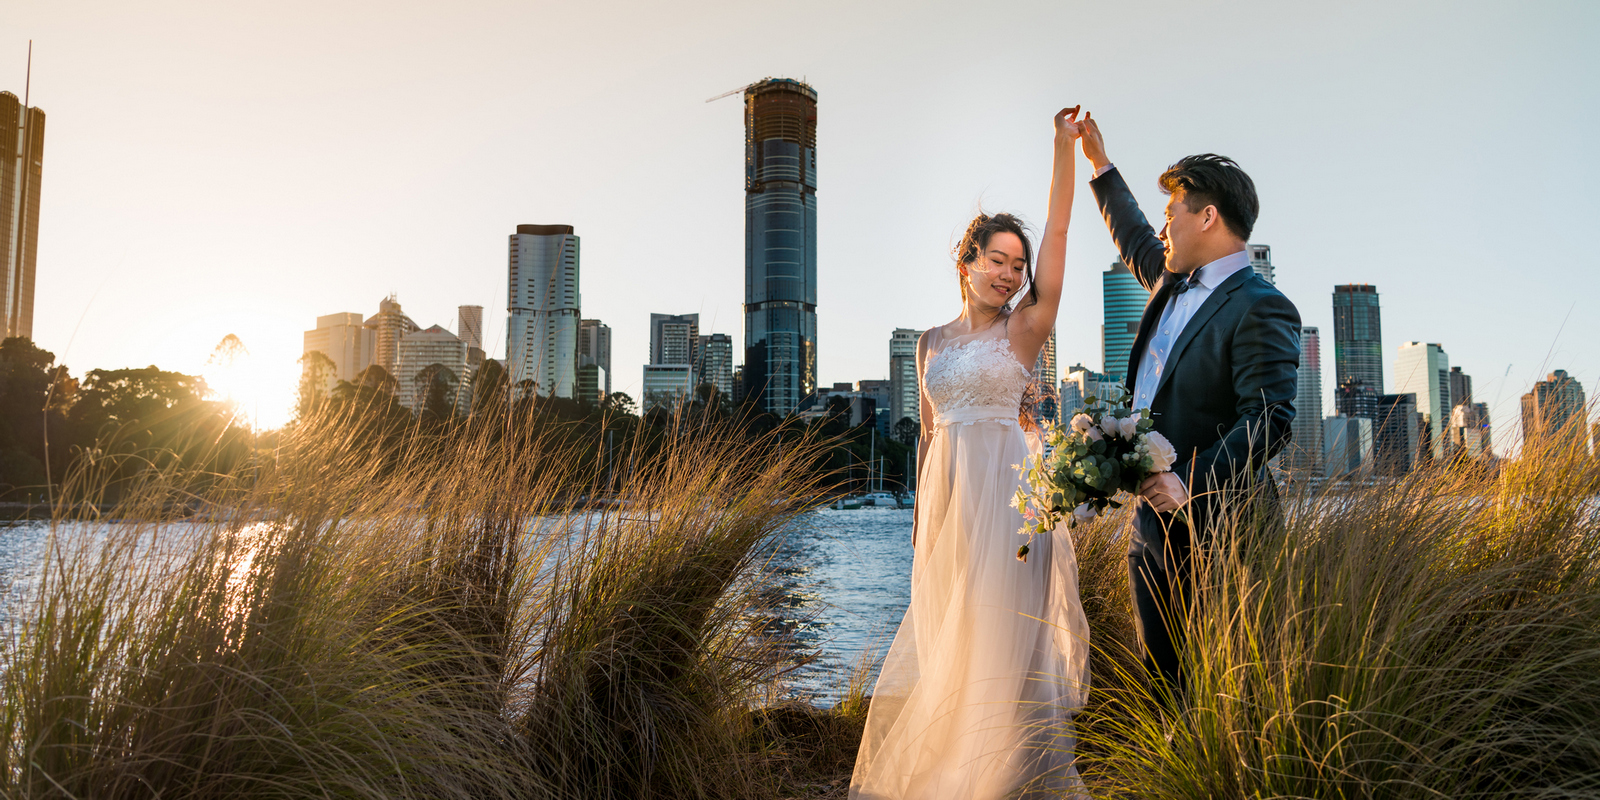 Wedding photo at Kangroo Point of Brisbane